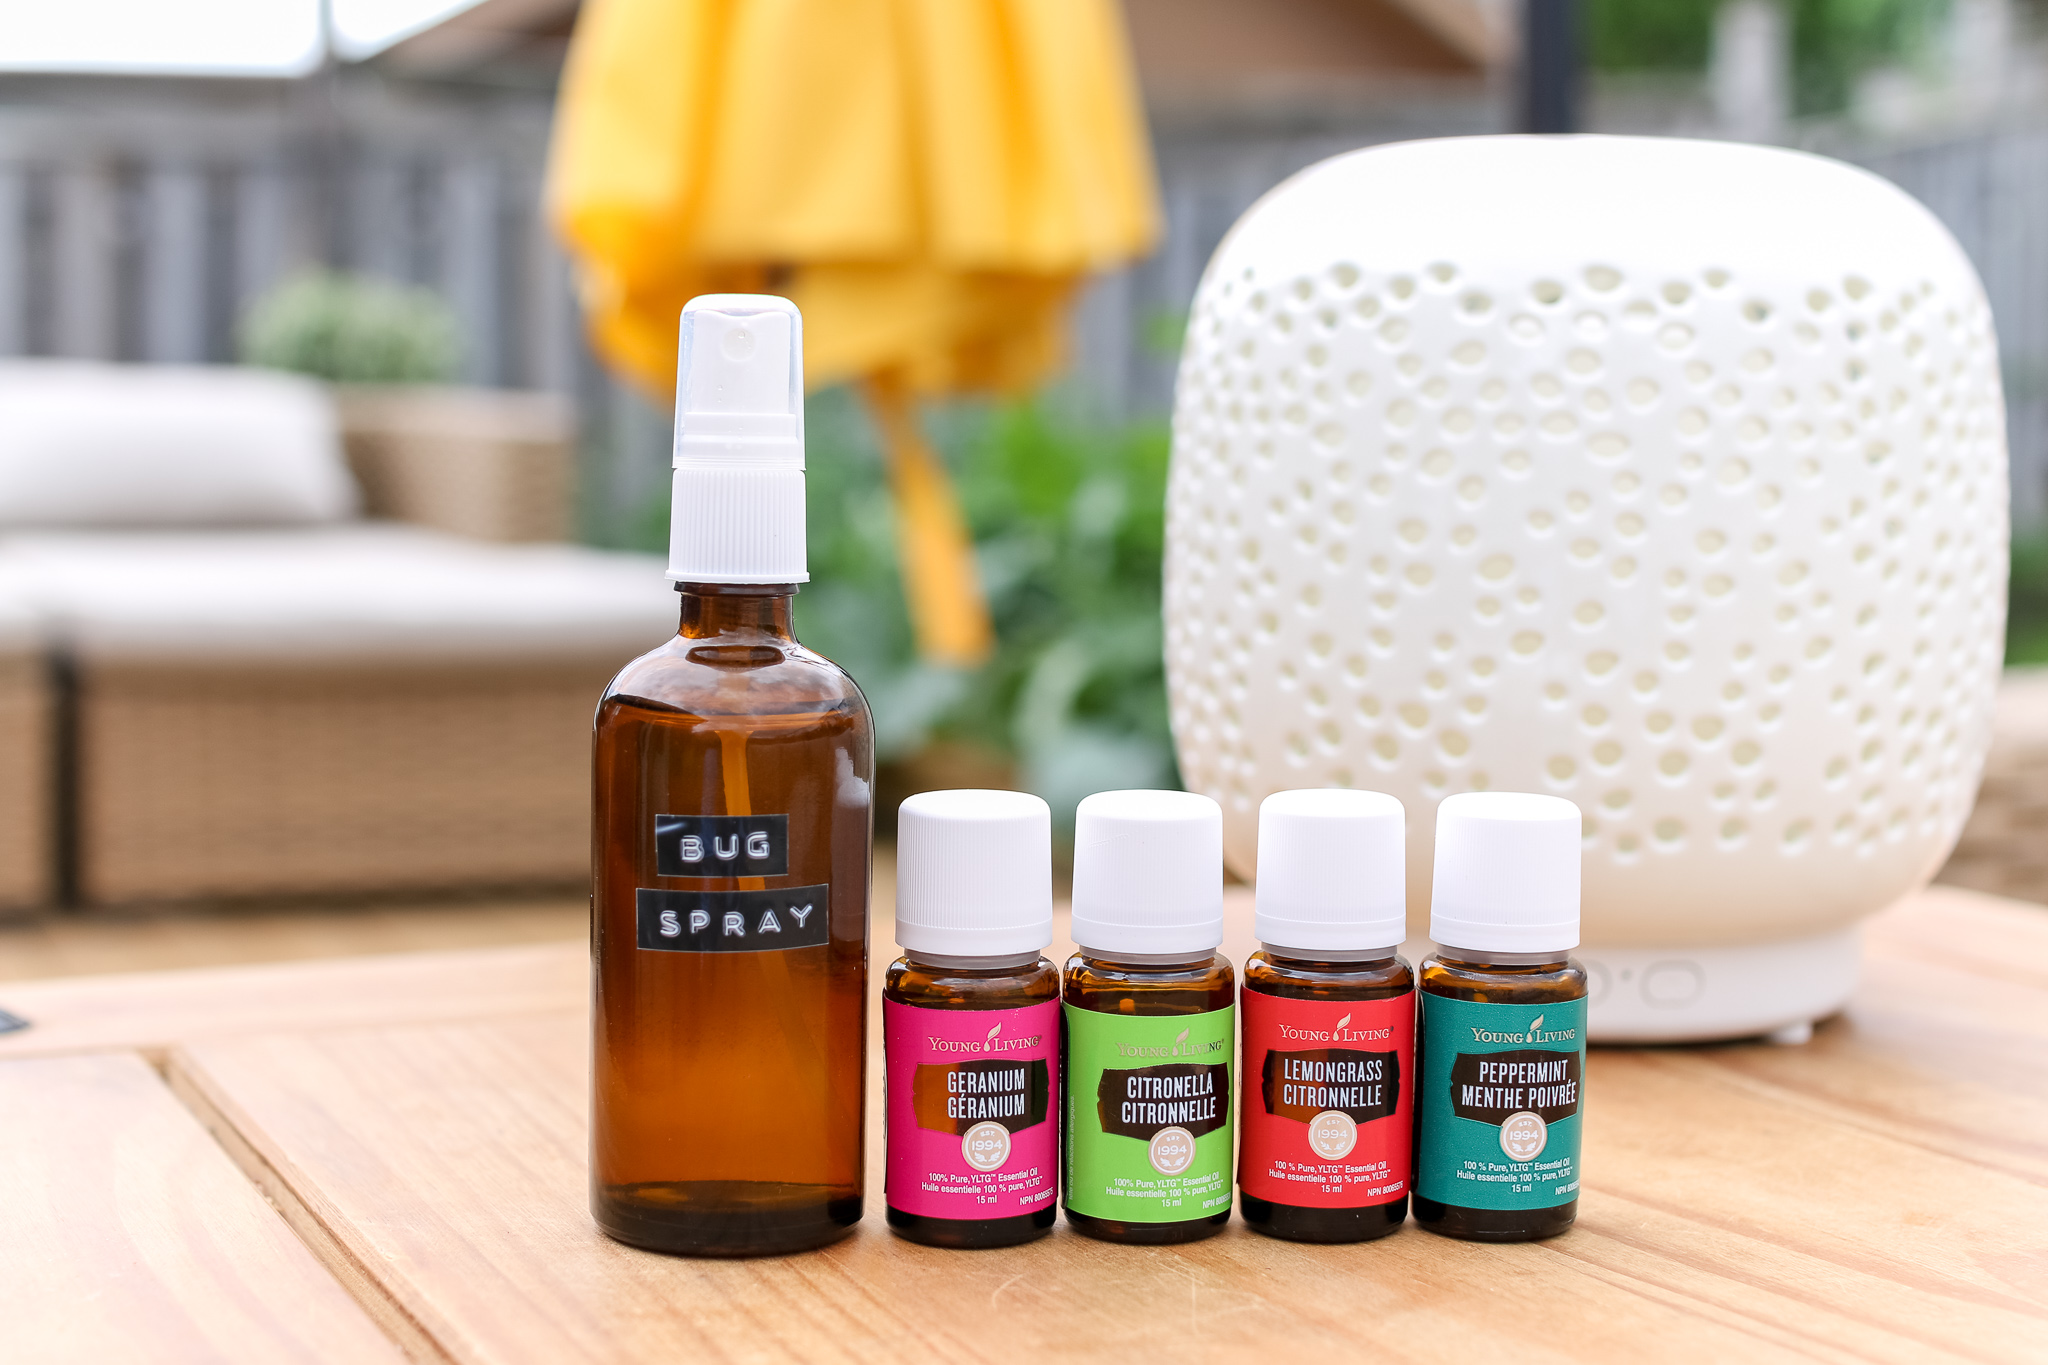 This is your summer essential oil survival guide! I have included 5 must-have DIYs that are 100% non-toxic, healthy and safe to use for the whole family!